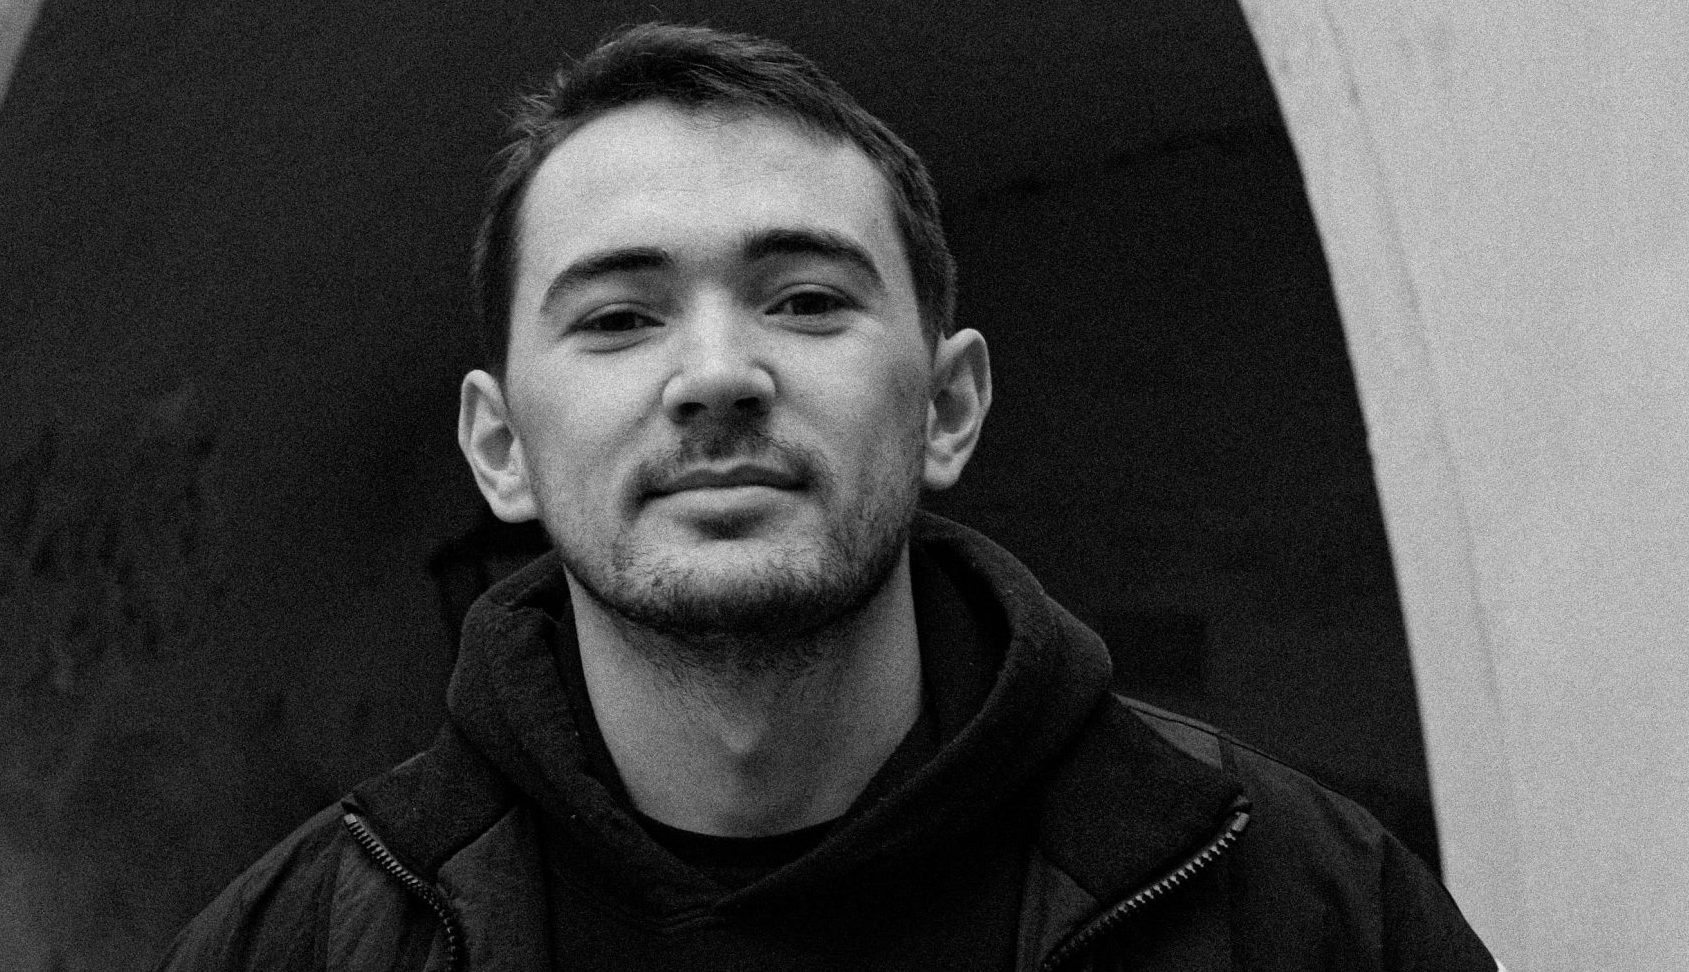 [INTERVIEW] Following his new release on iVAV Recordings, Upcoming producer Fordian talks to us about 'Jungle Maze', his go-to equipment when producing, musical influences and upcoming projects thumbnail